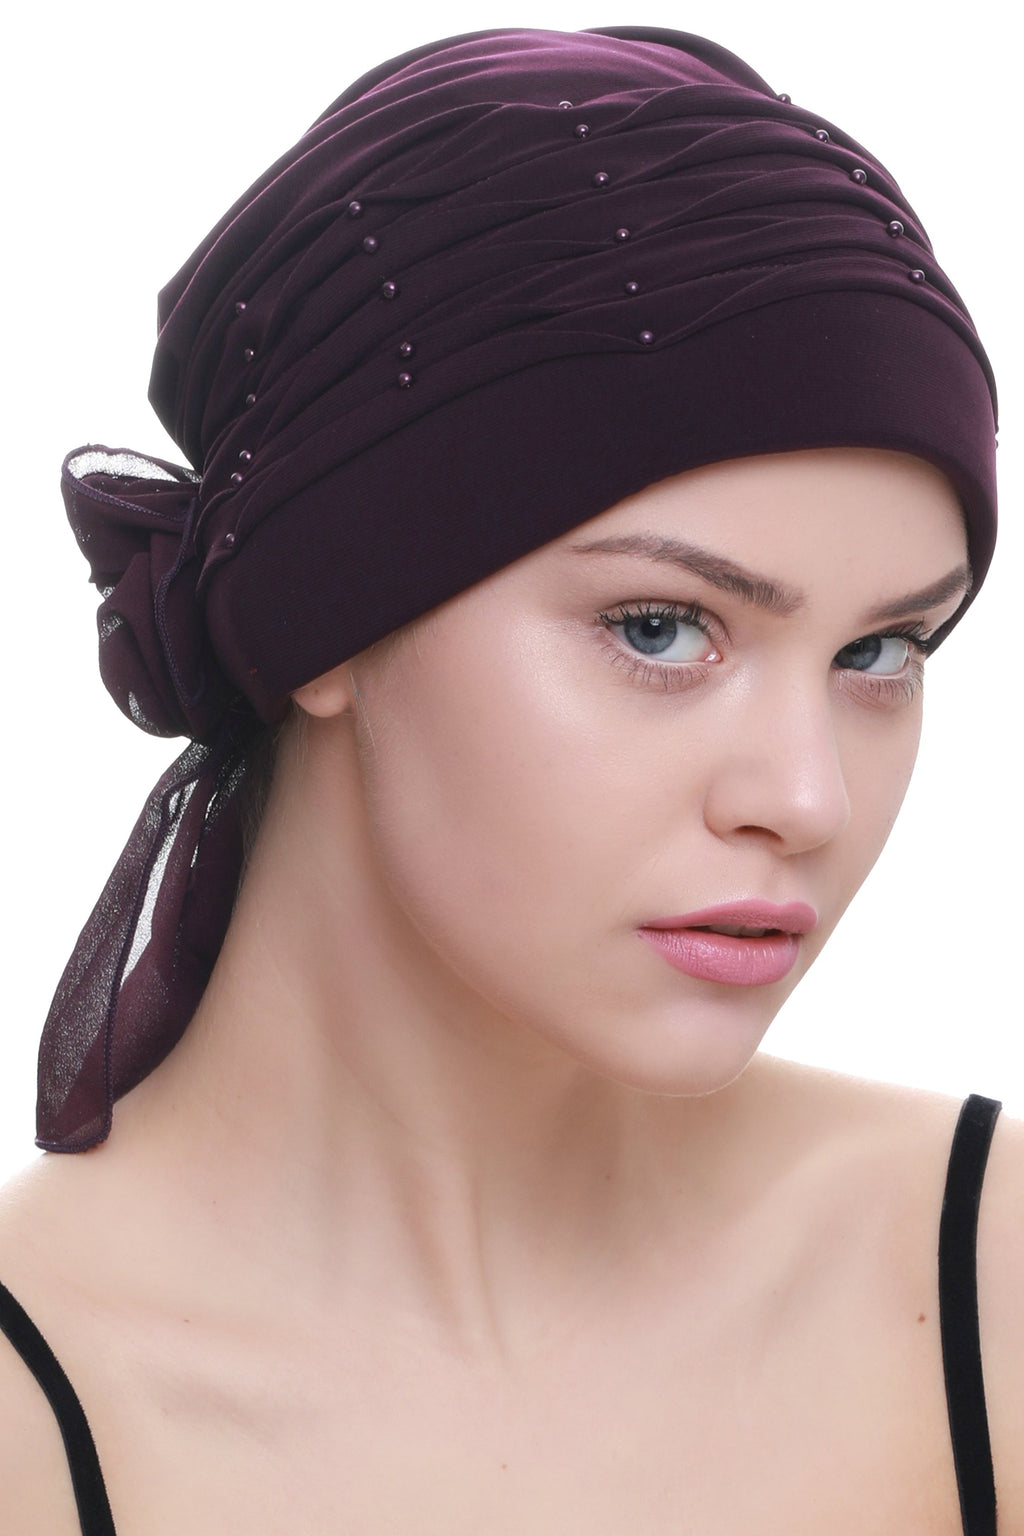 Deresina Twisted pleated cancer headwear mulberry